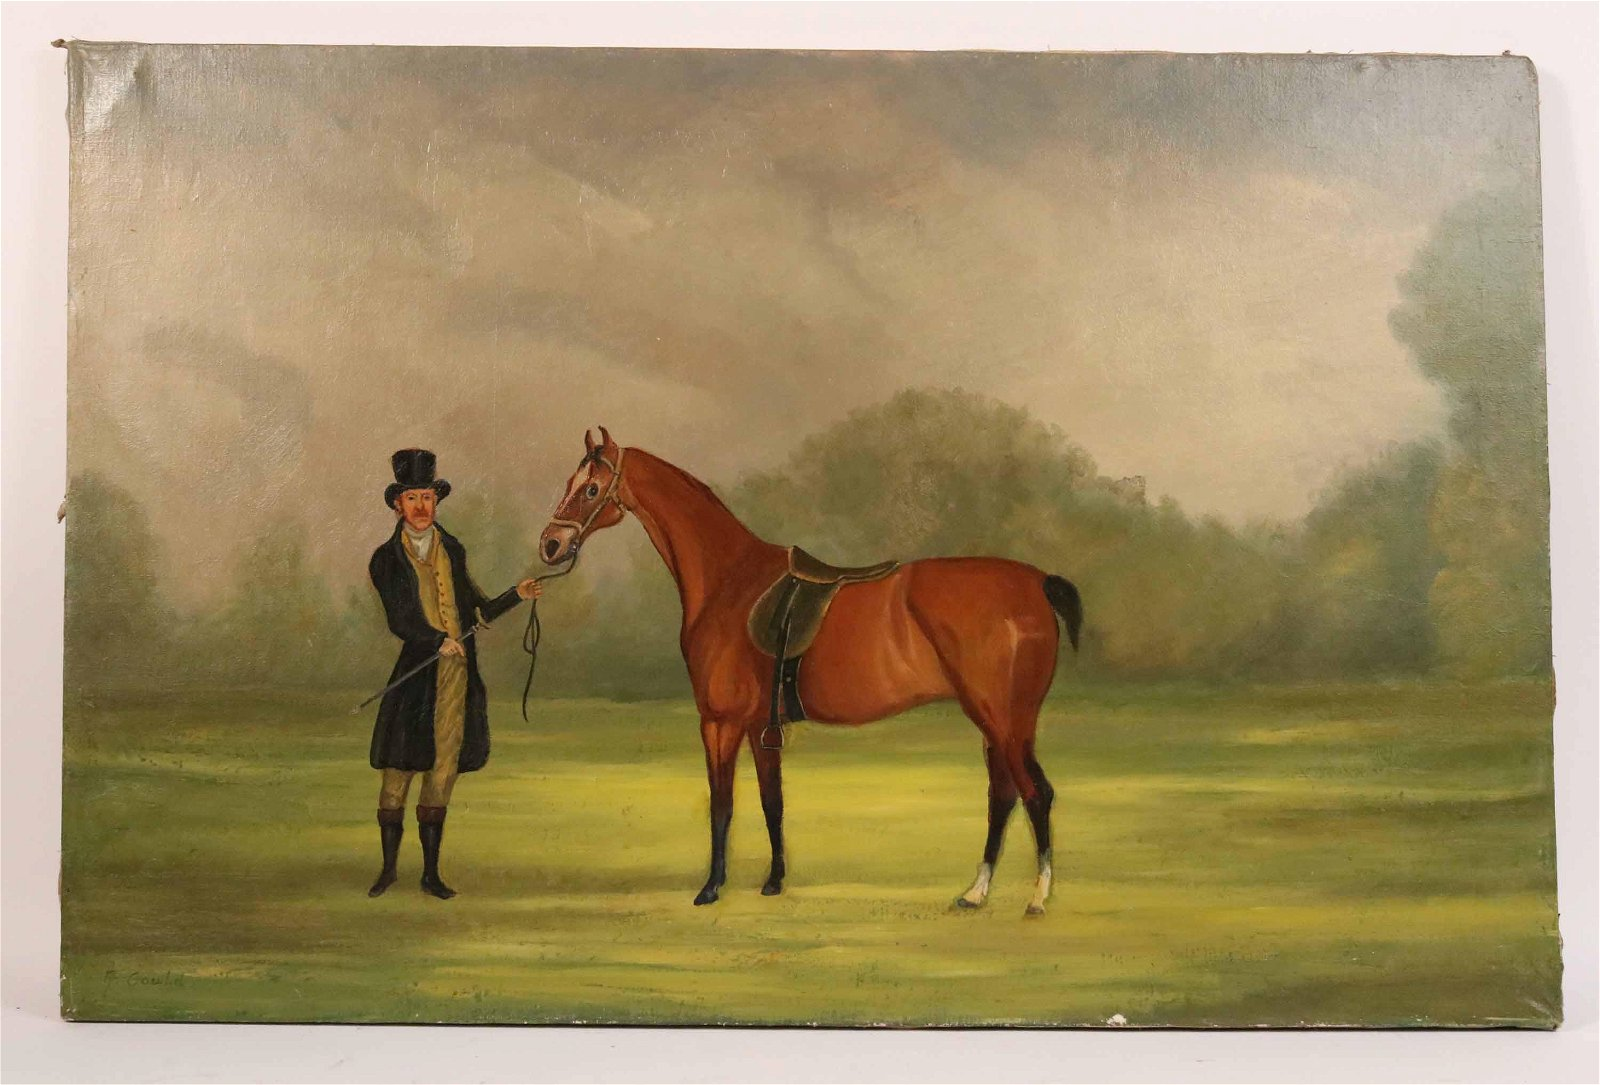 Oil on Canvas, Portrait of Gentleman and Horse